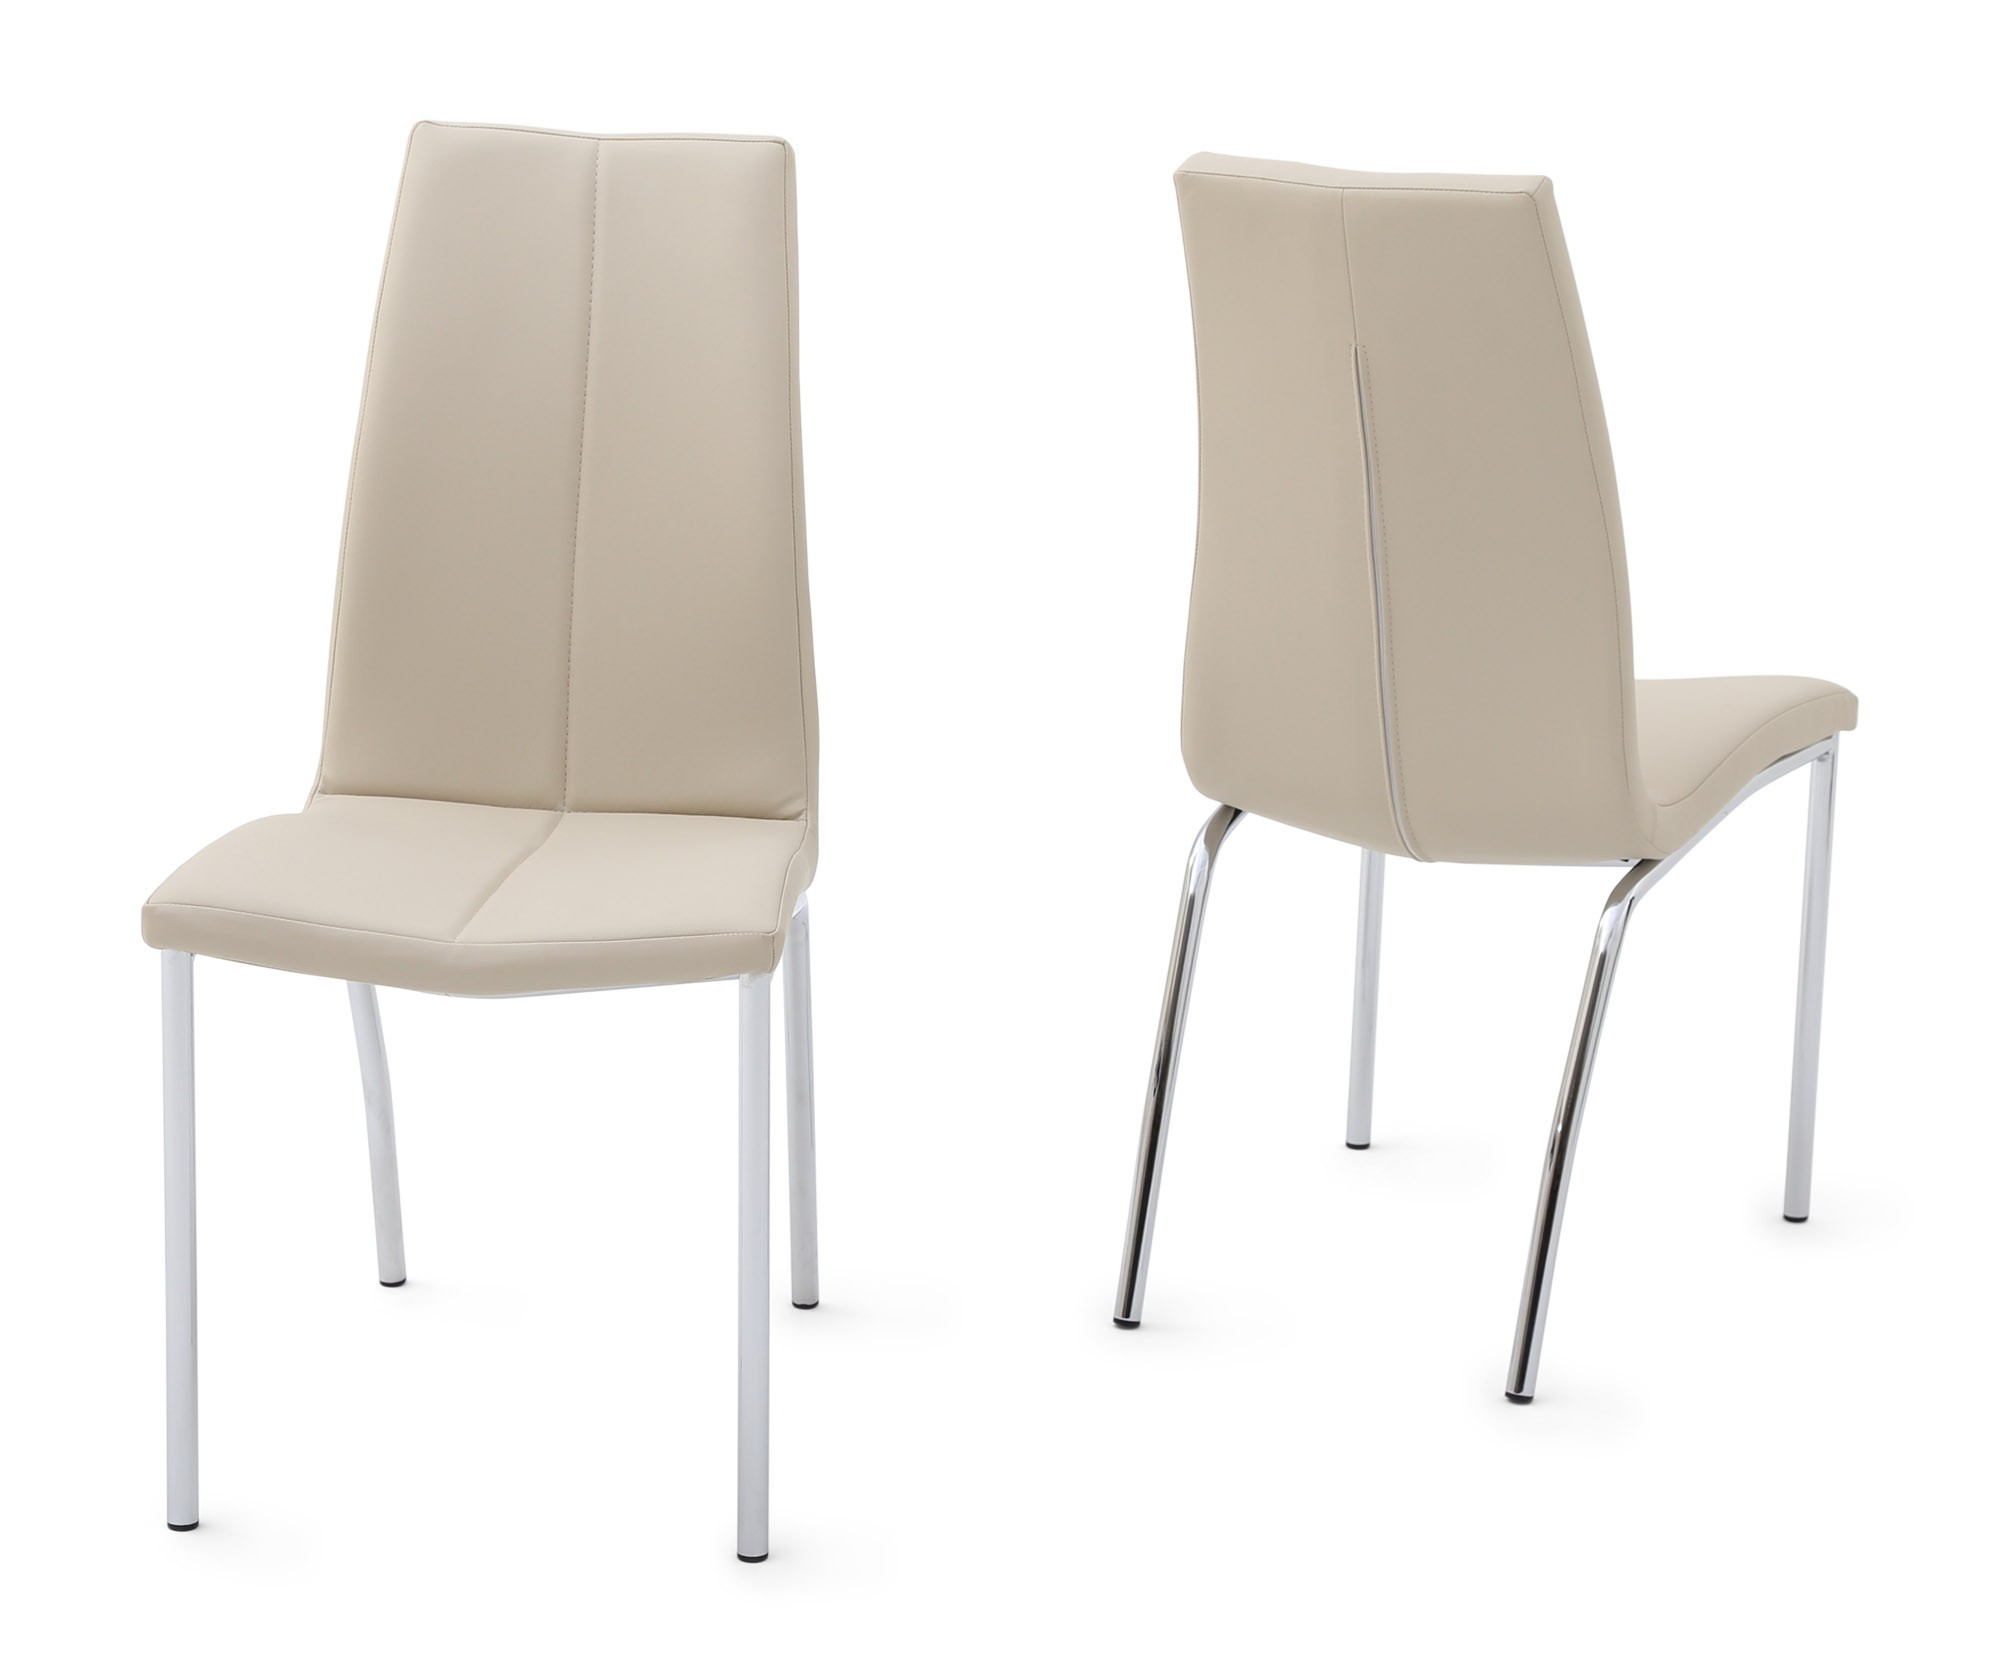 Ada Cream Leather Dining Chair Intended For Favorite Cream Leather Dining Chairs (View 3 of 25)